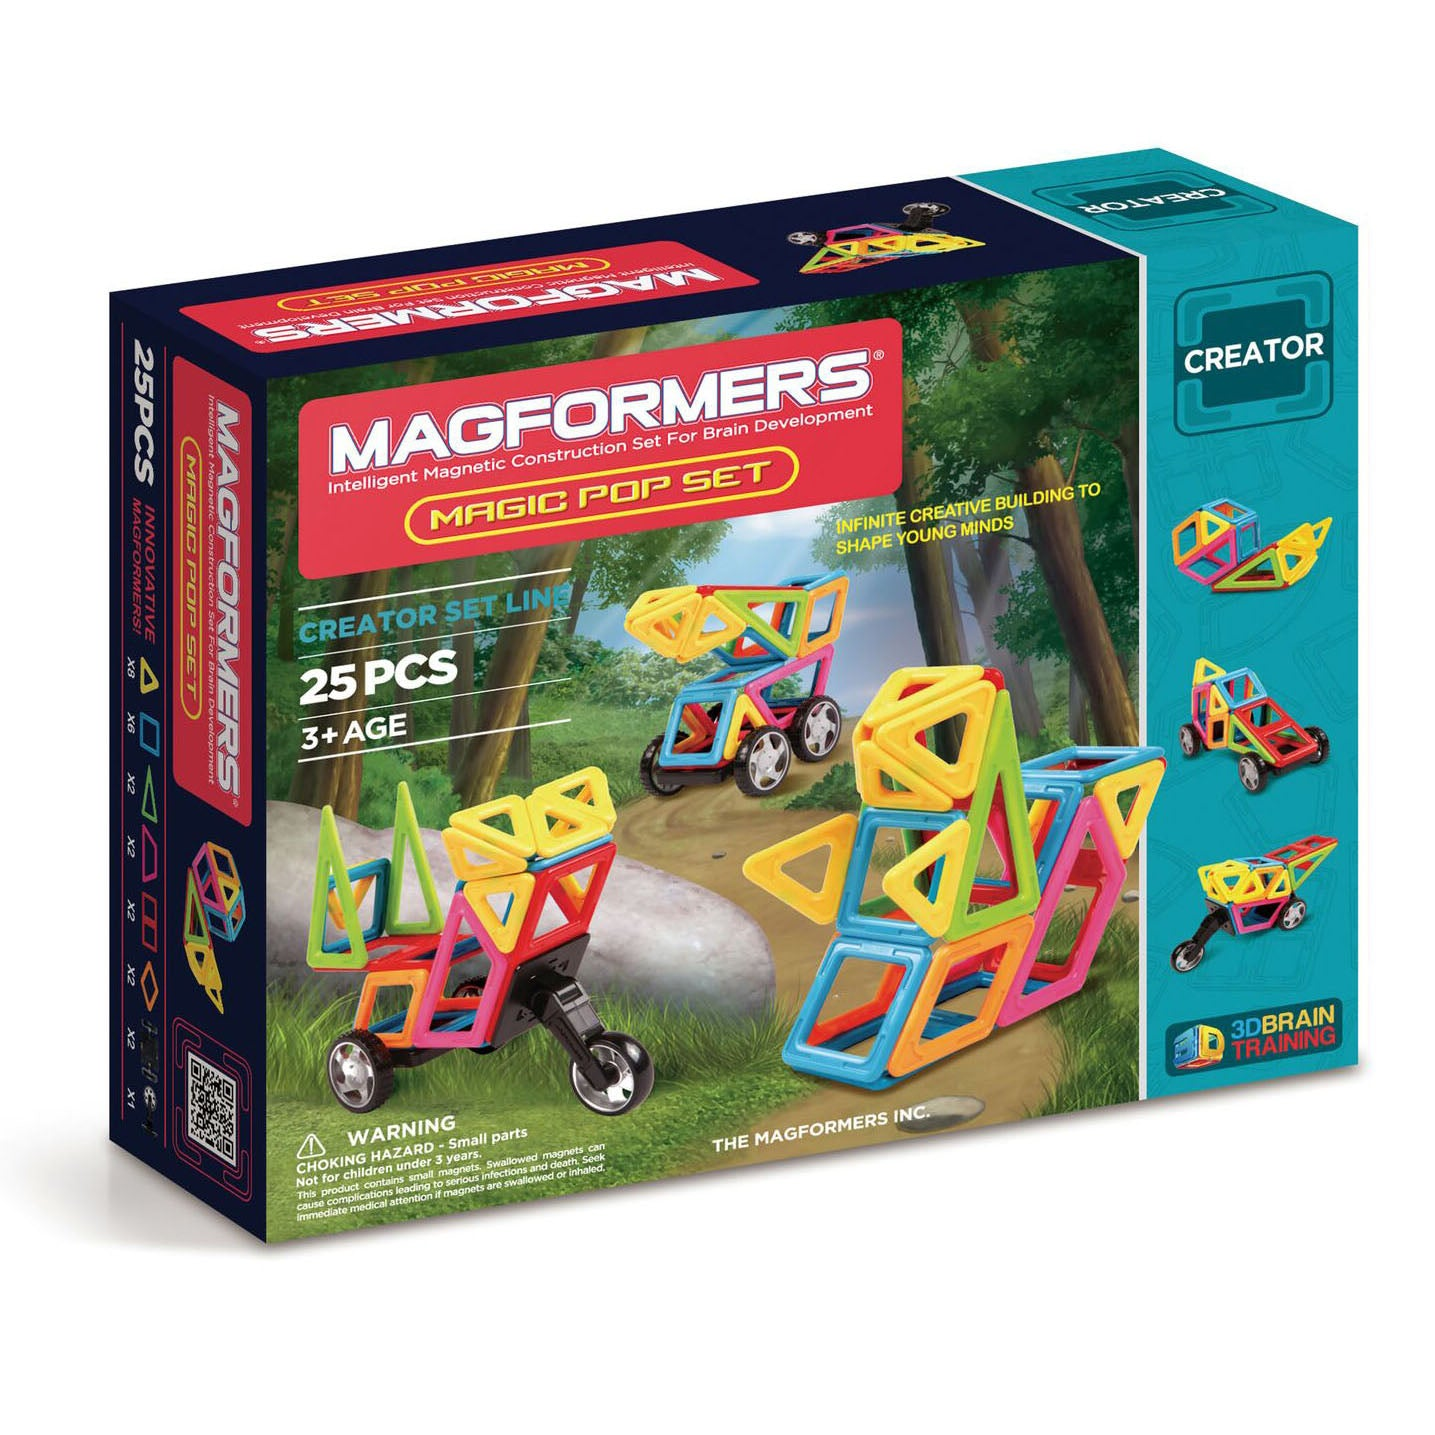 Magformers Magic Pop - Magnetic Construction Set, boxed